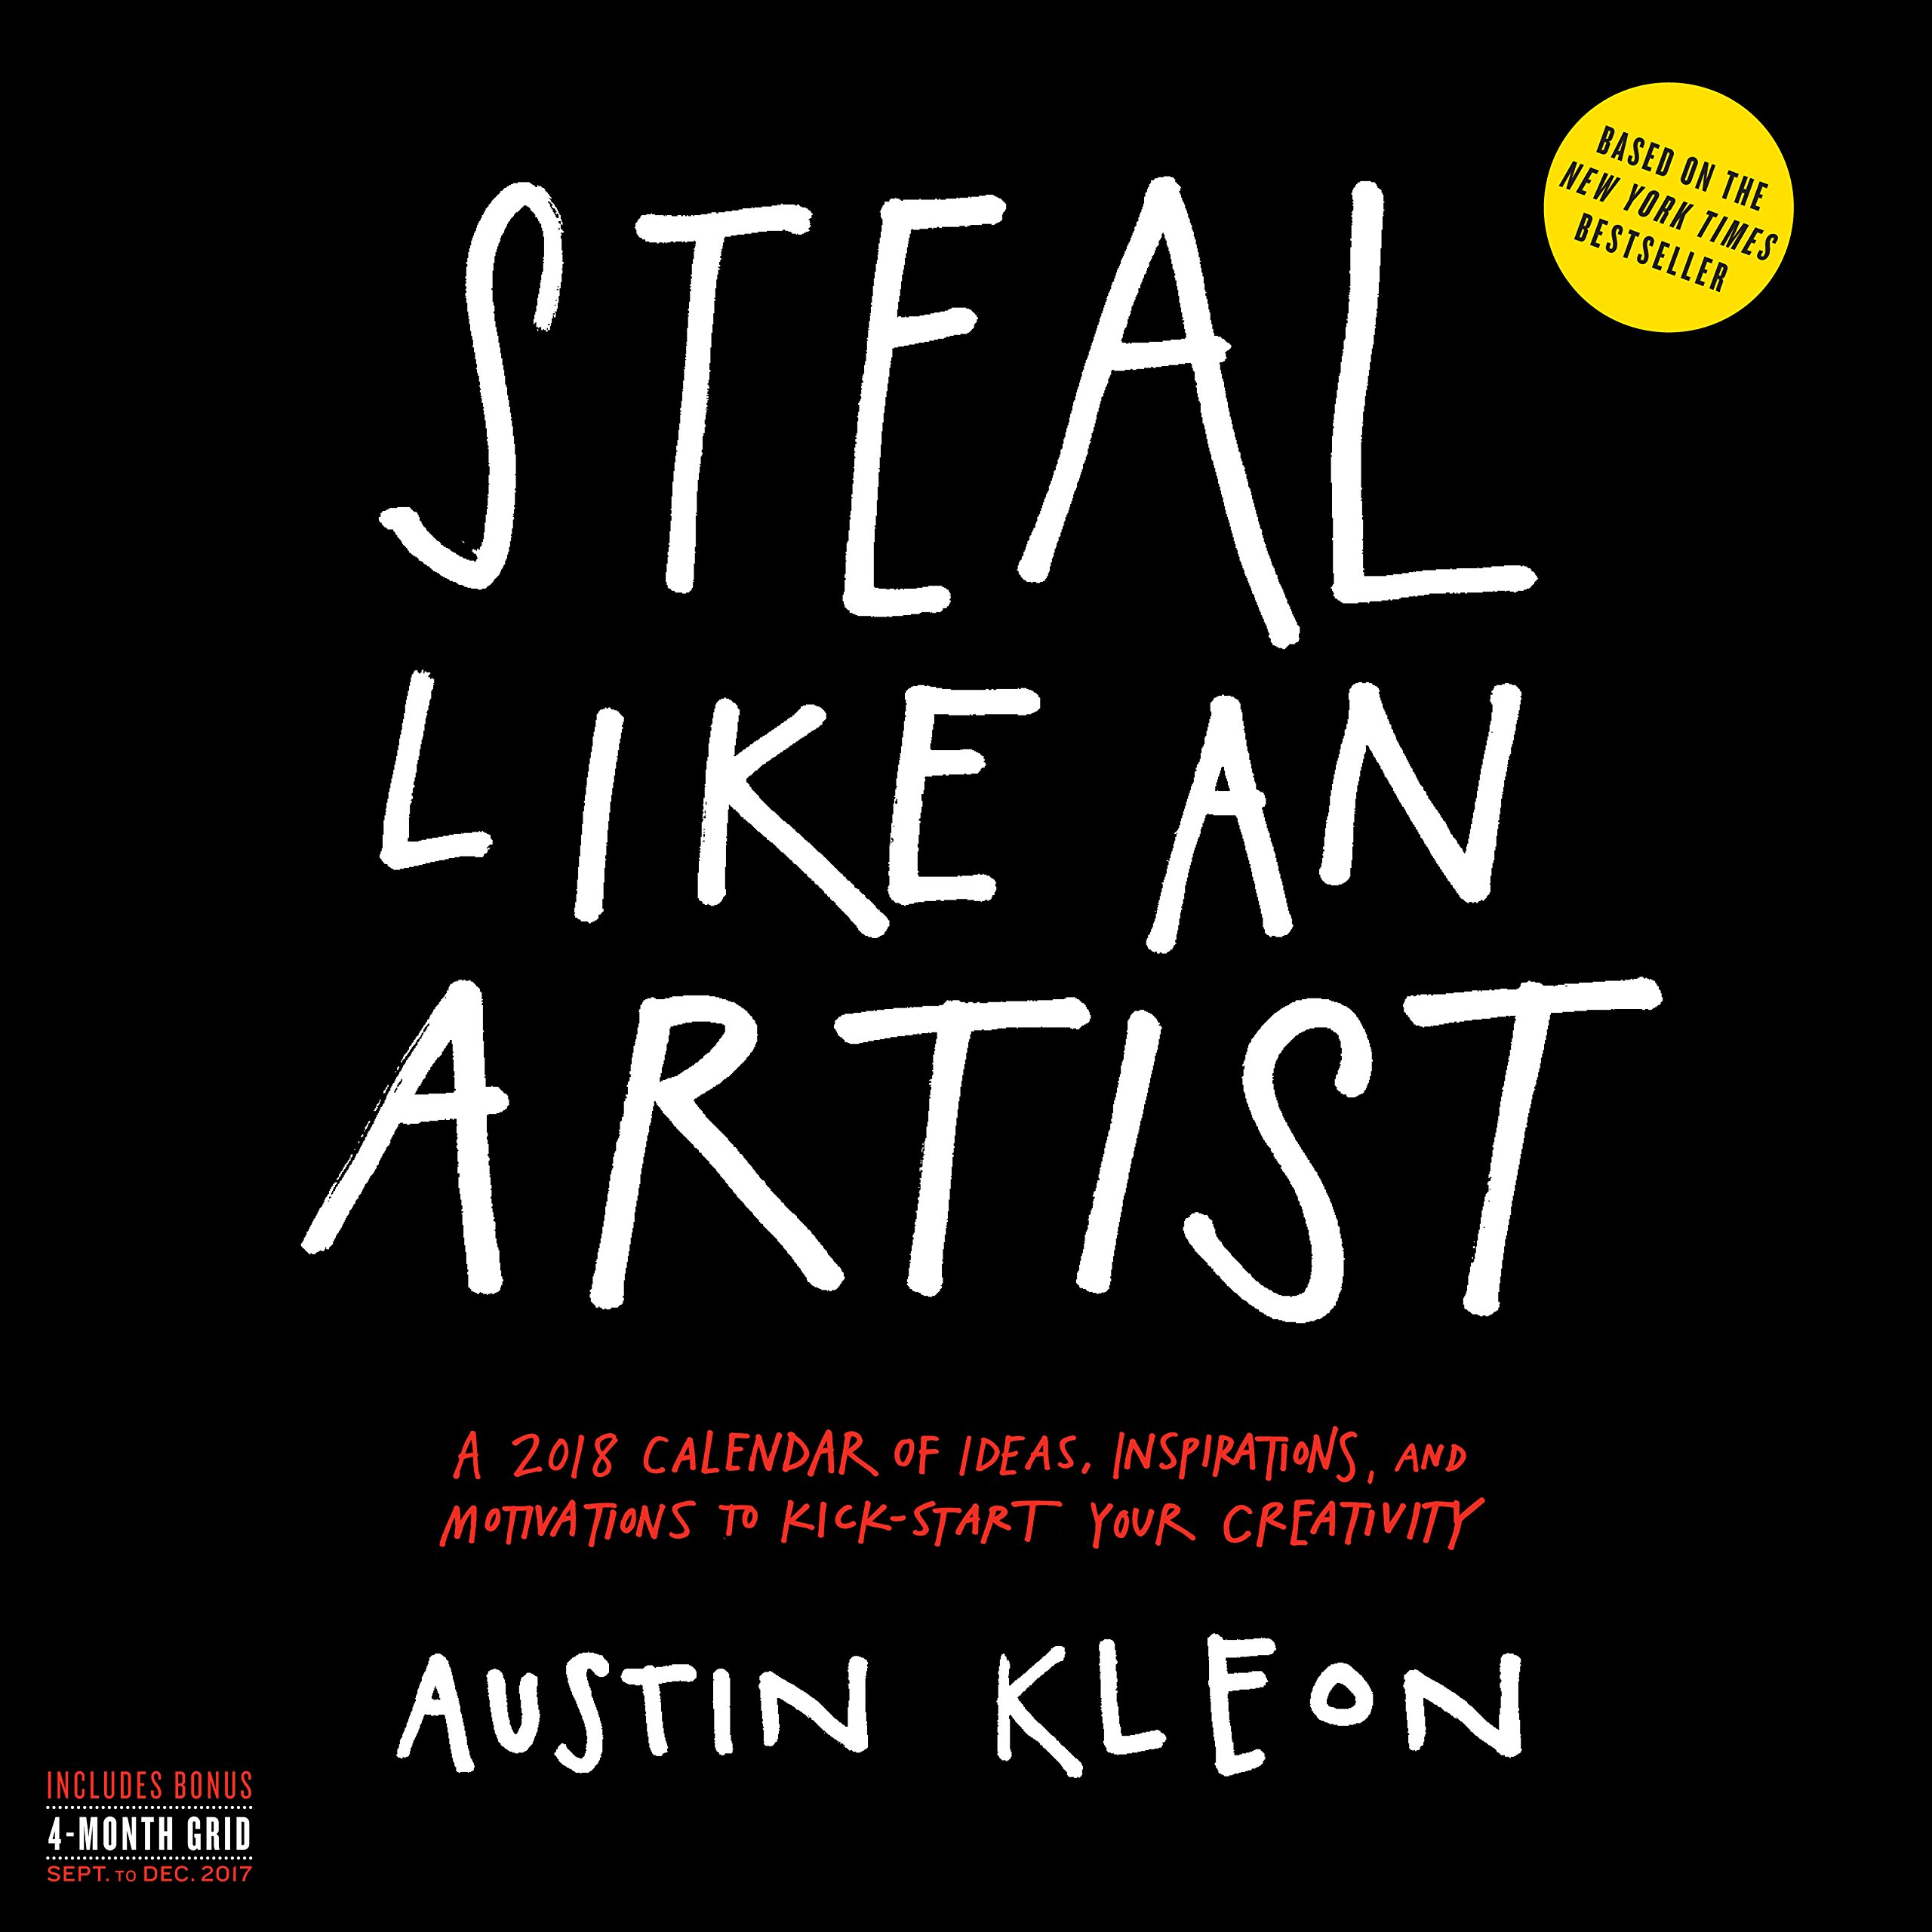 Steal Like an Artist 2018 Calendar (Anglais) Calendrier – Calendrier mural, 14 août 2017 Austin Kleon Workman Publishing 152350157X NON-CLASSIFIABLE